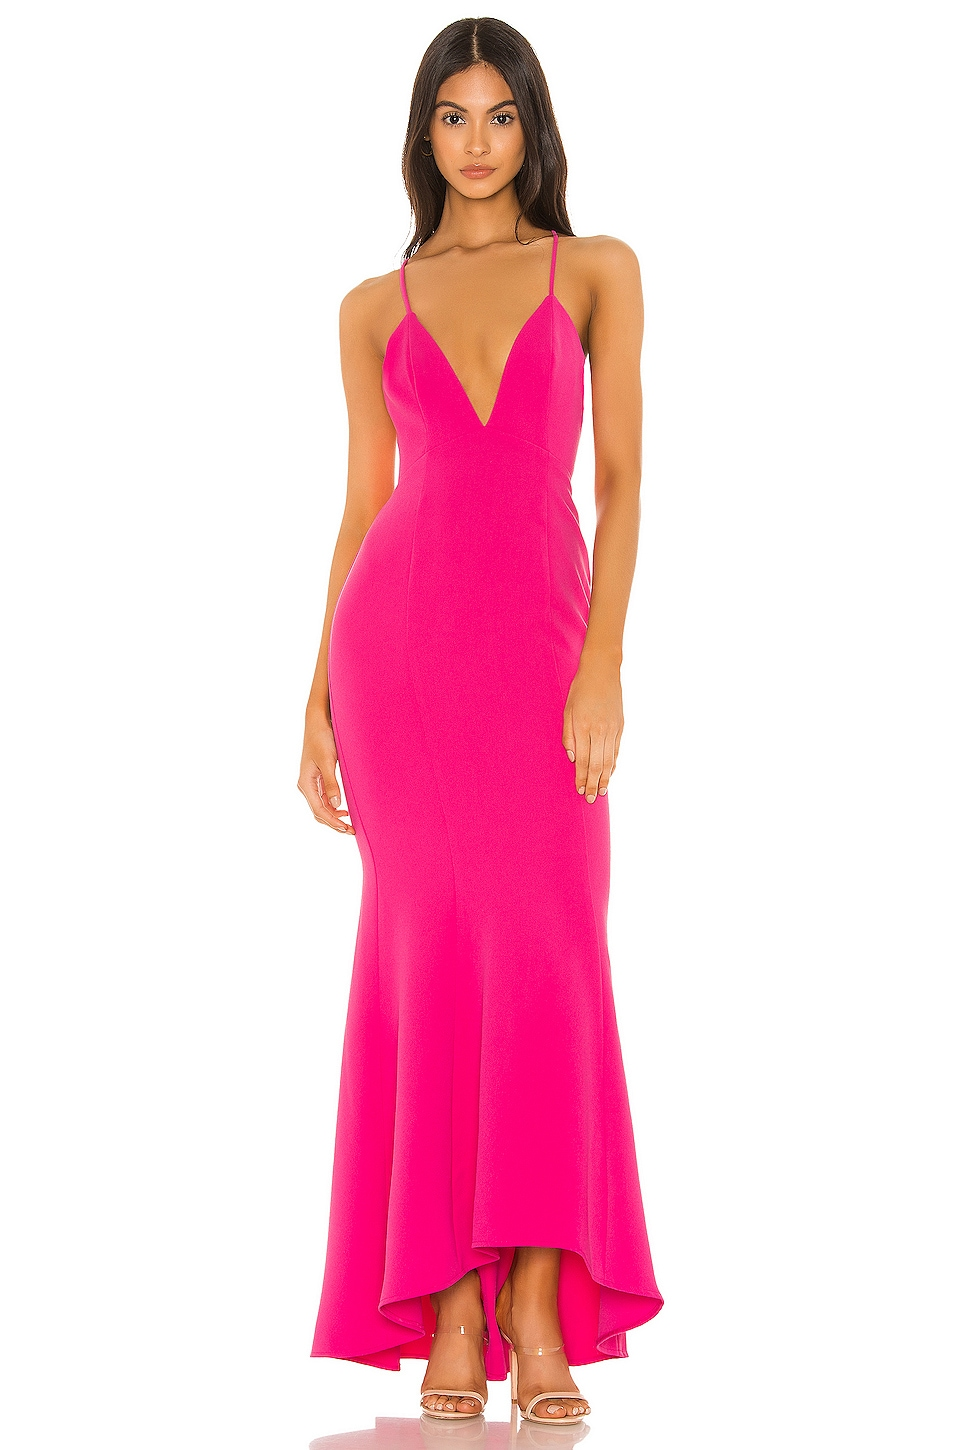 NBD Mindy Gown in Hot Pink